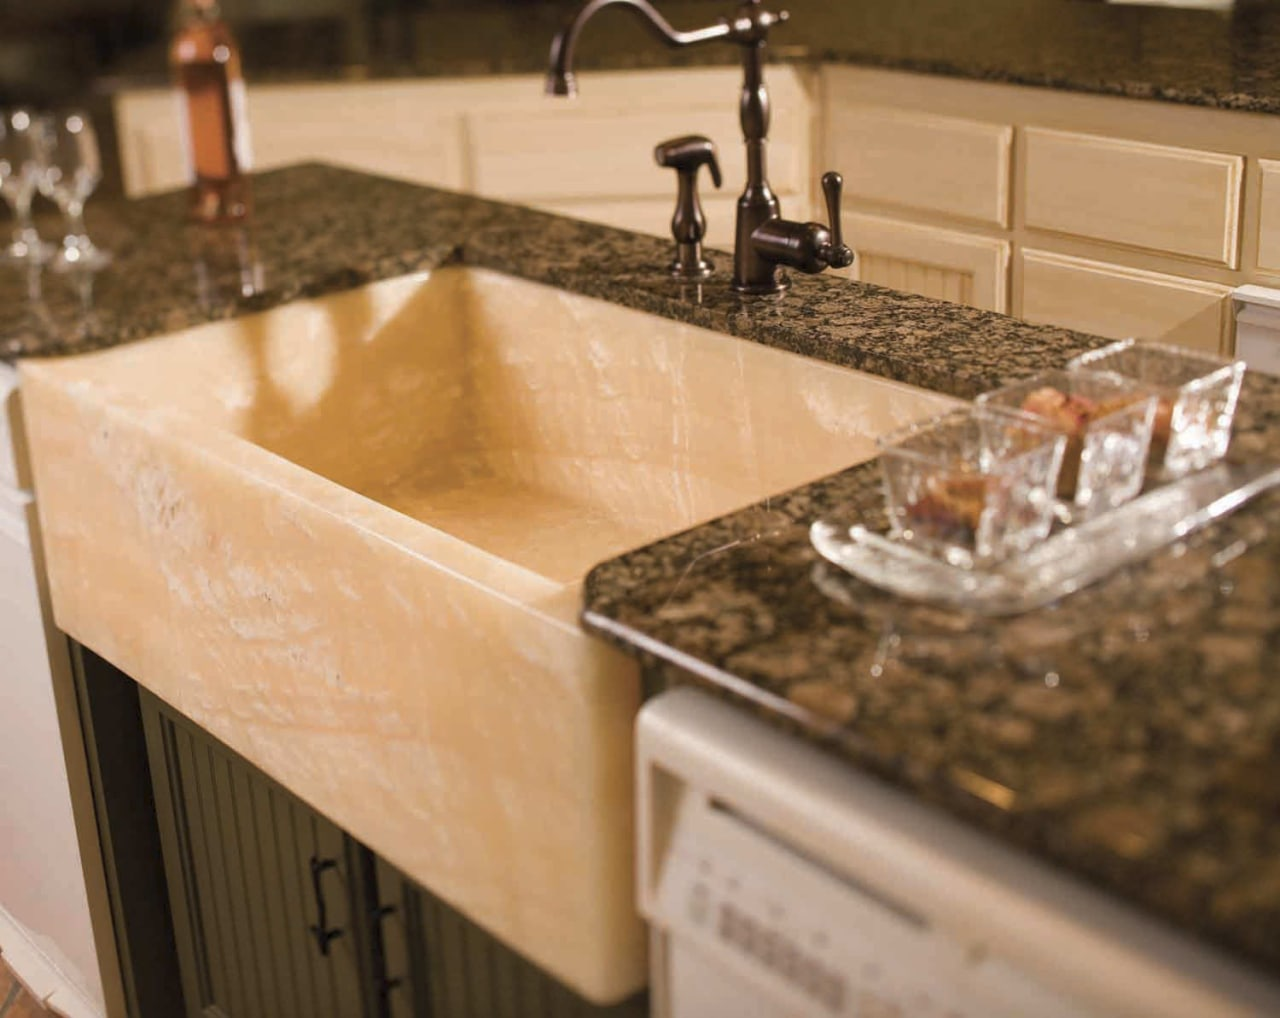 De La Fontera can custom design and handcraft countertop, granite, kitchen, sink, orange, brown